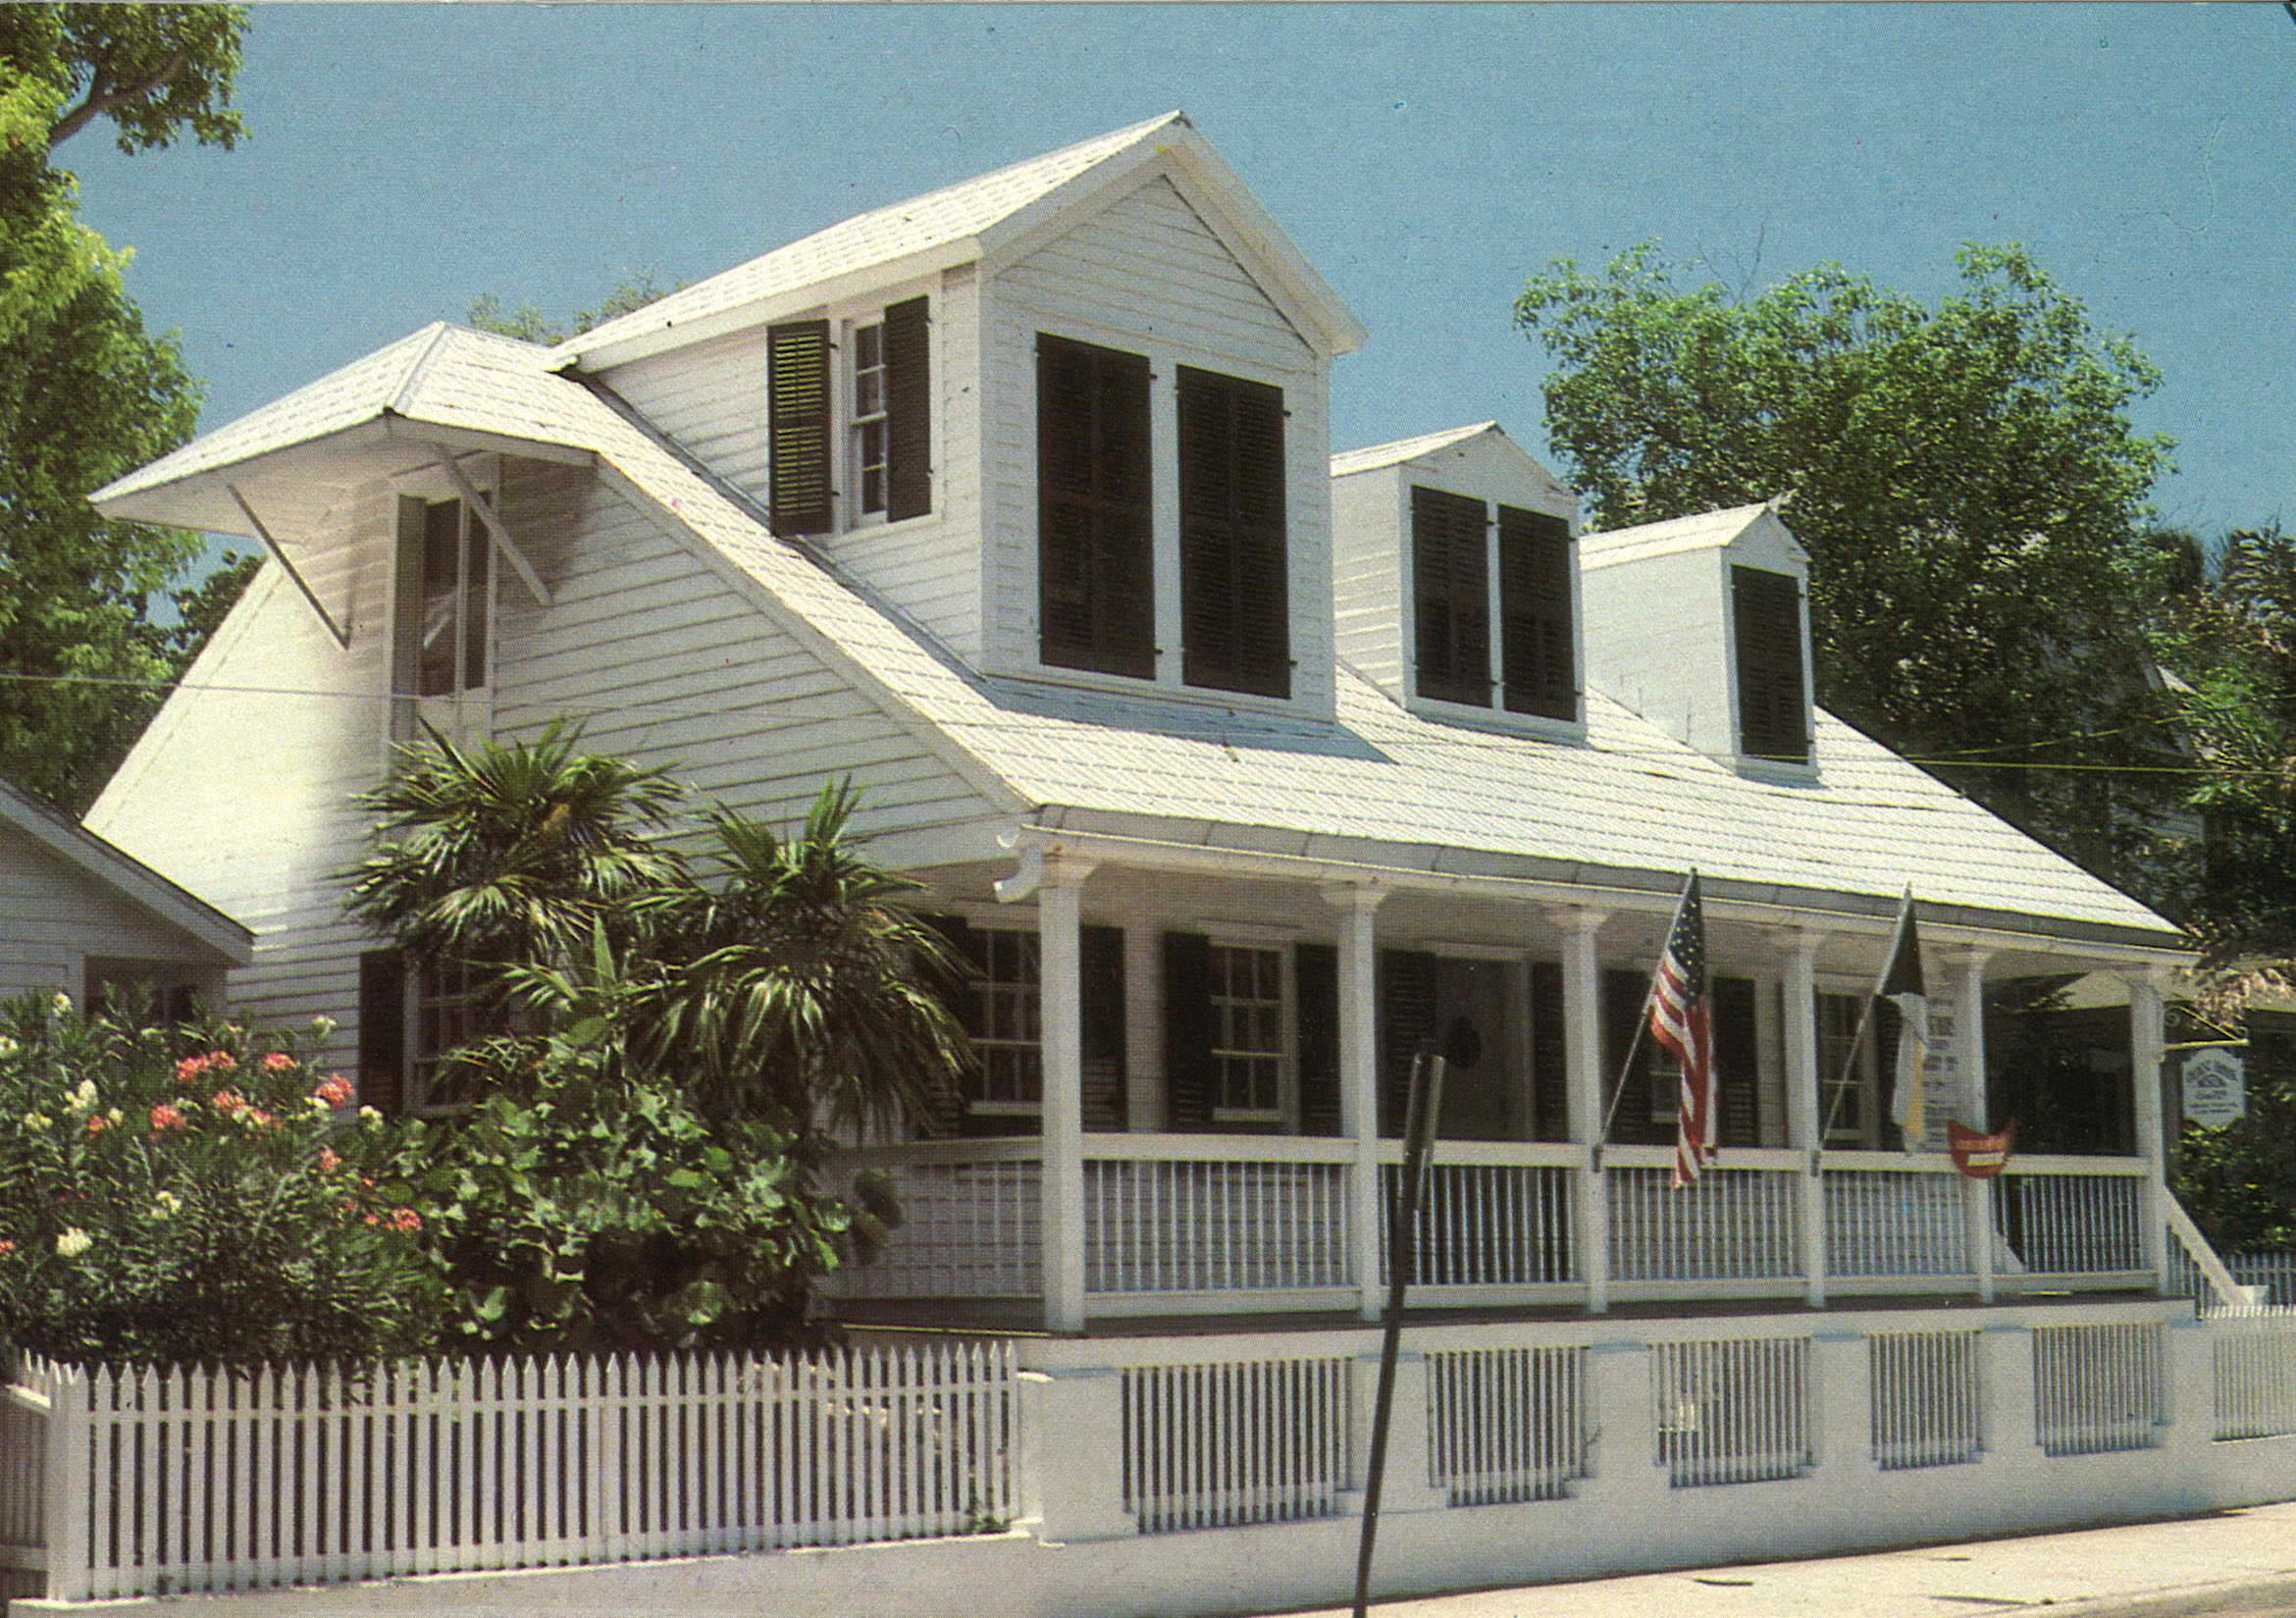 Key West, a place for aspiring writers